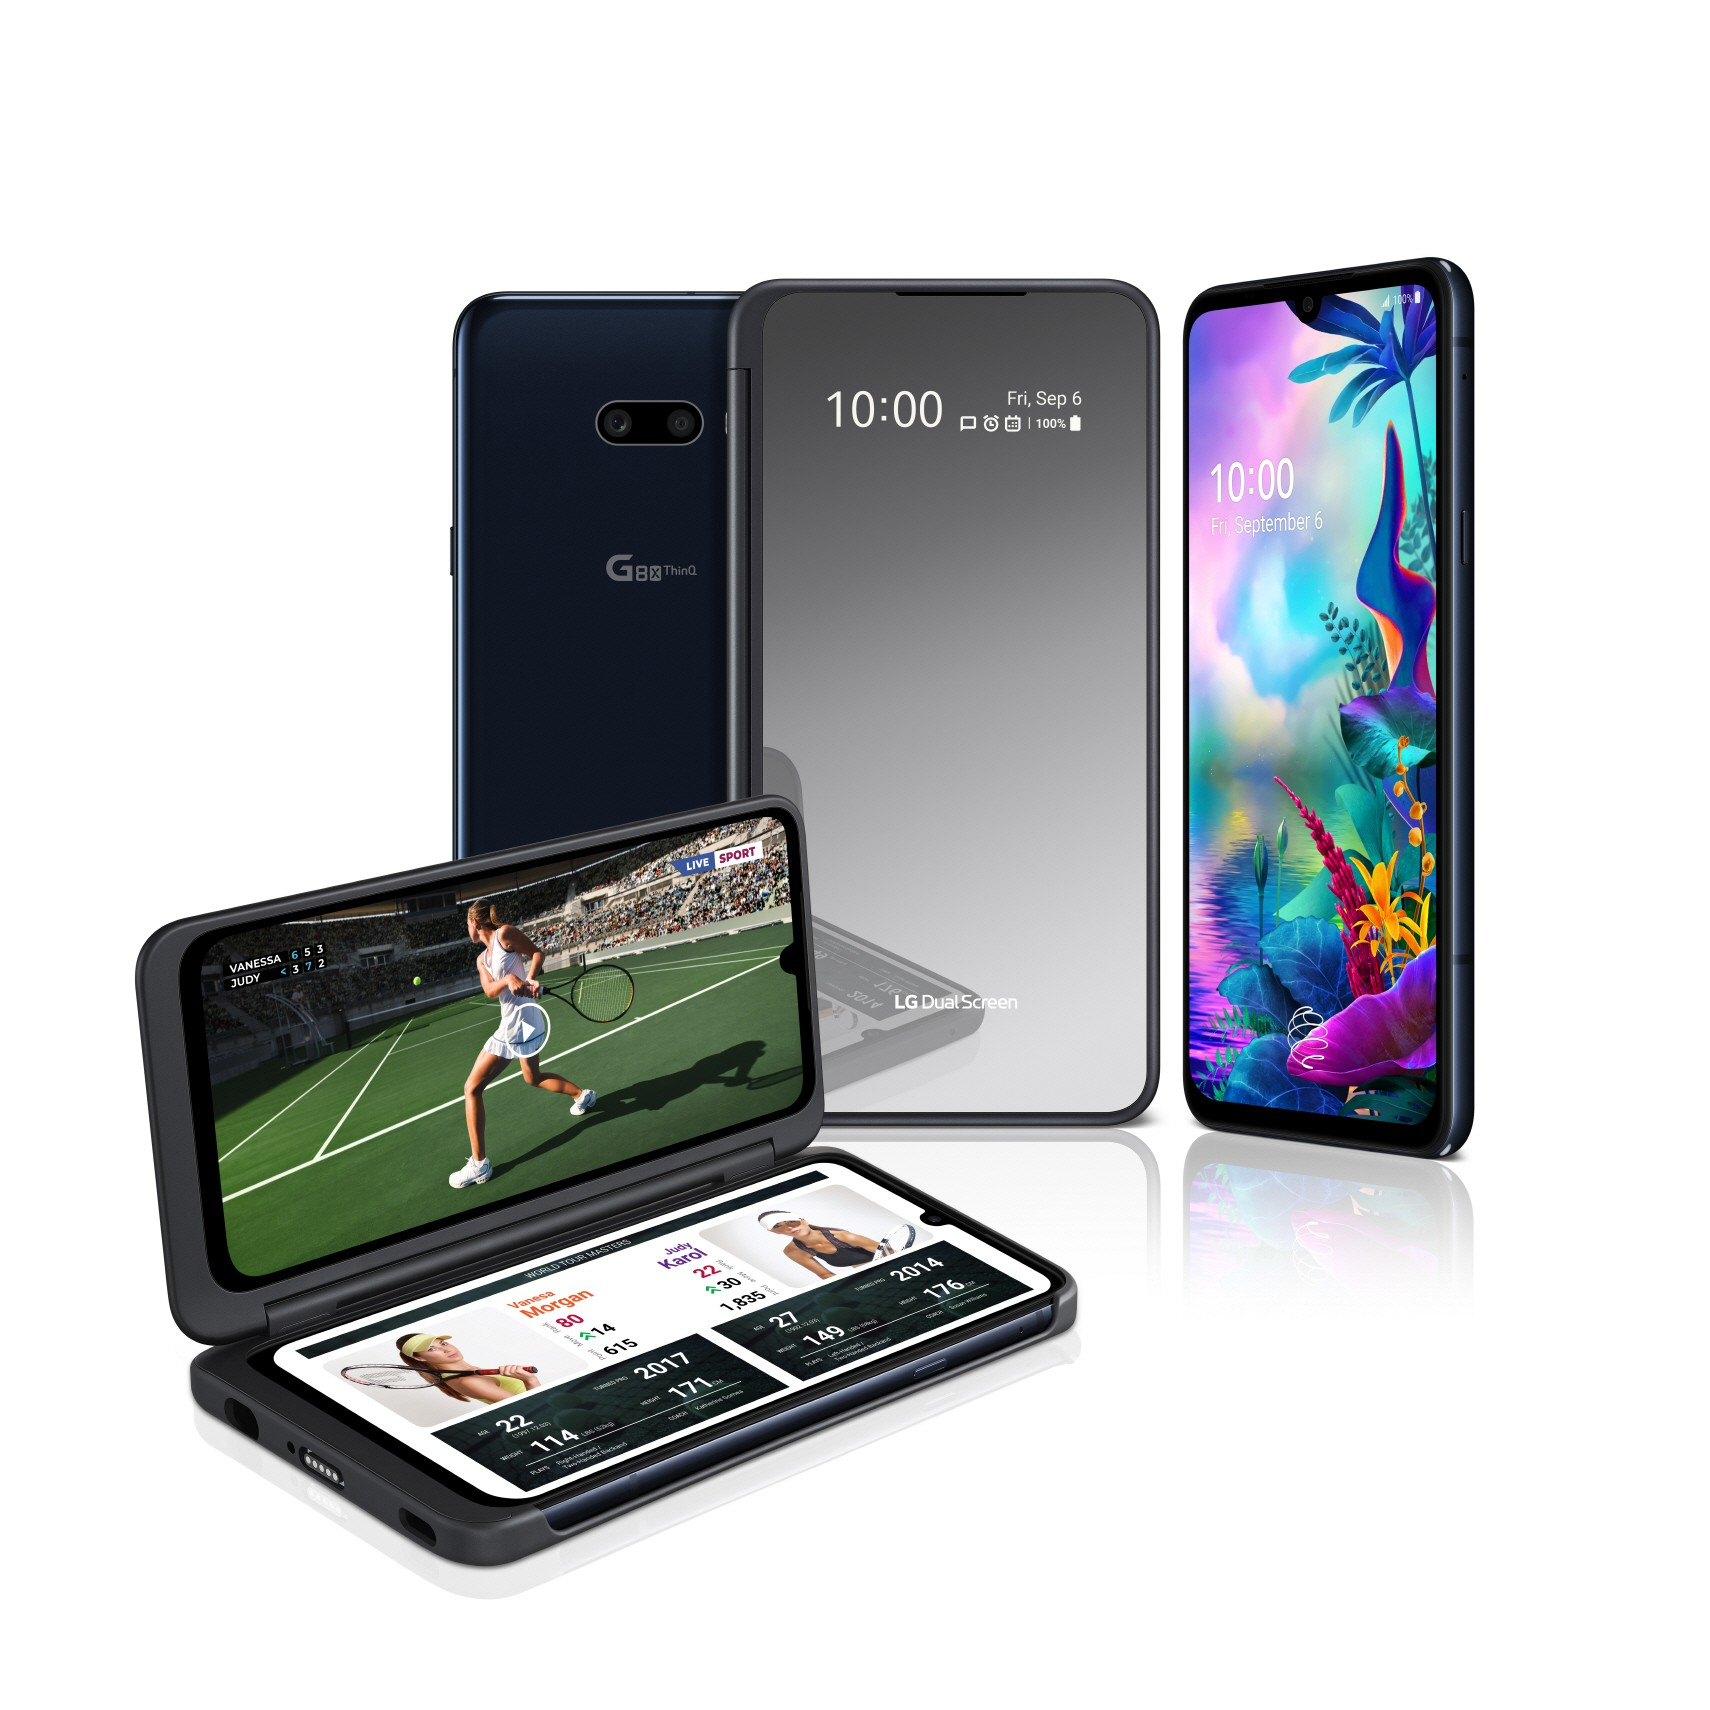 LG G8X ThinQ launched, new second screen accessory also